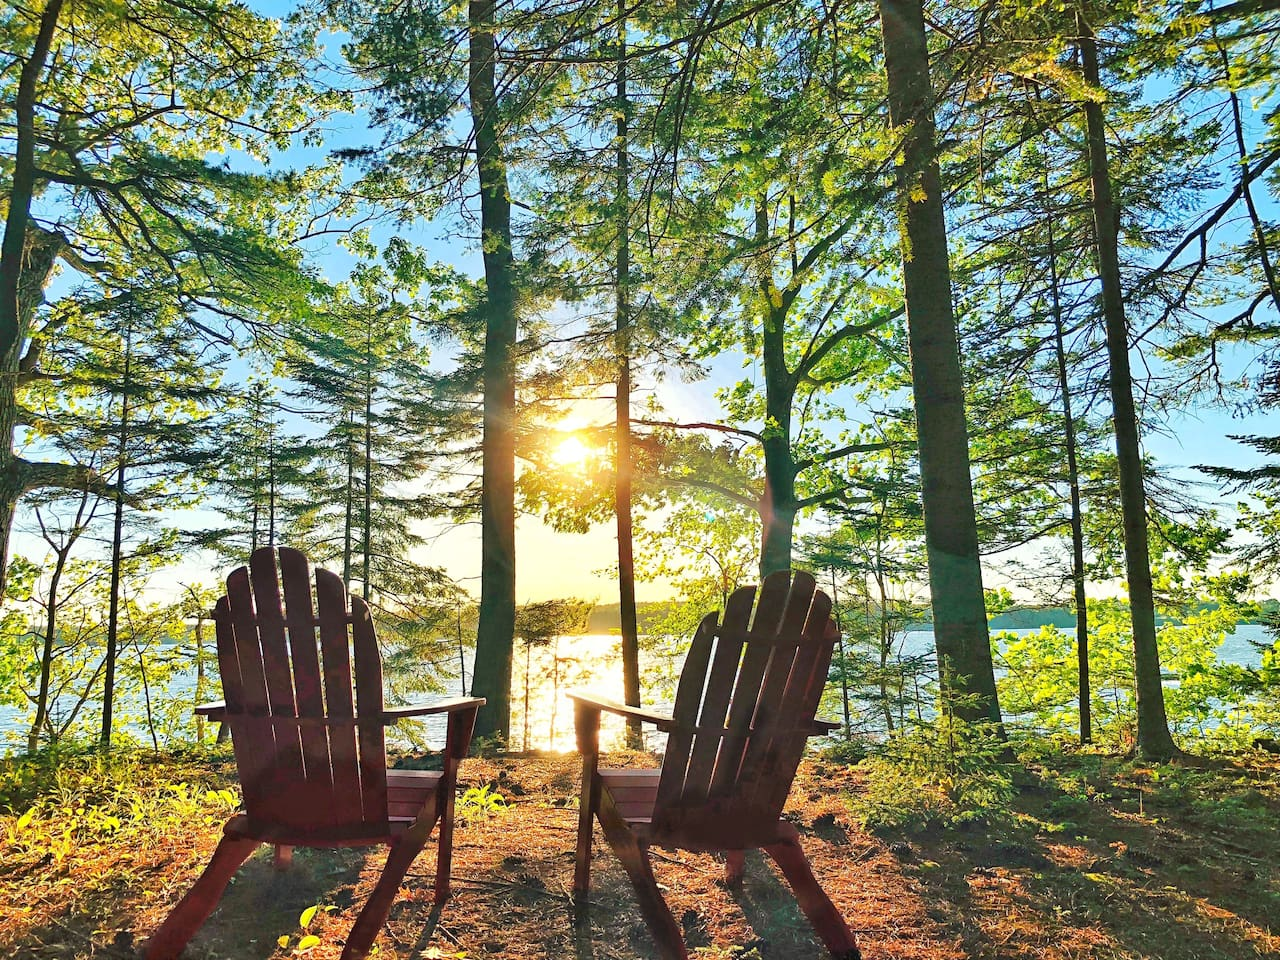 Relax in our comfortable adirondack chairs and savor the breathtaking view